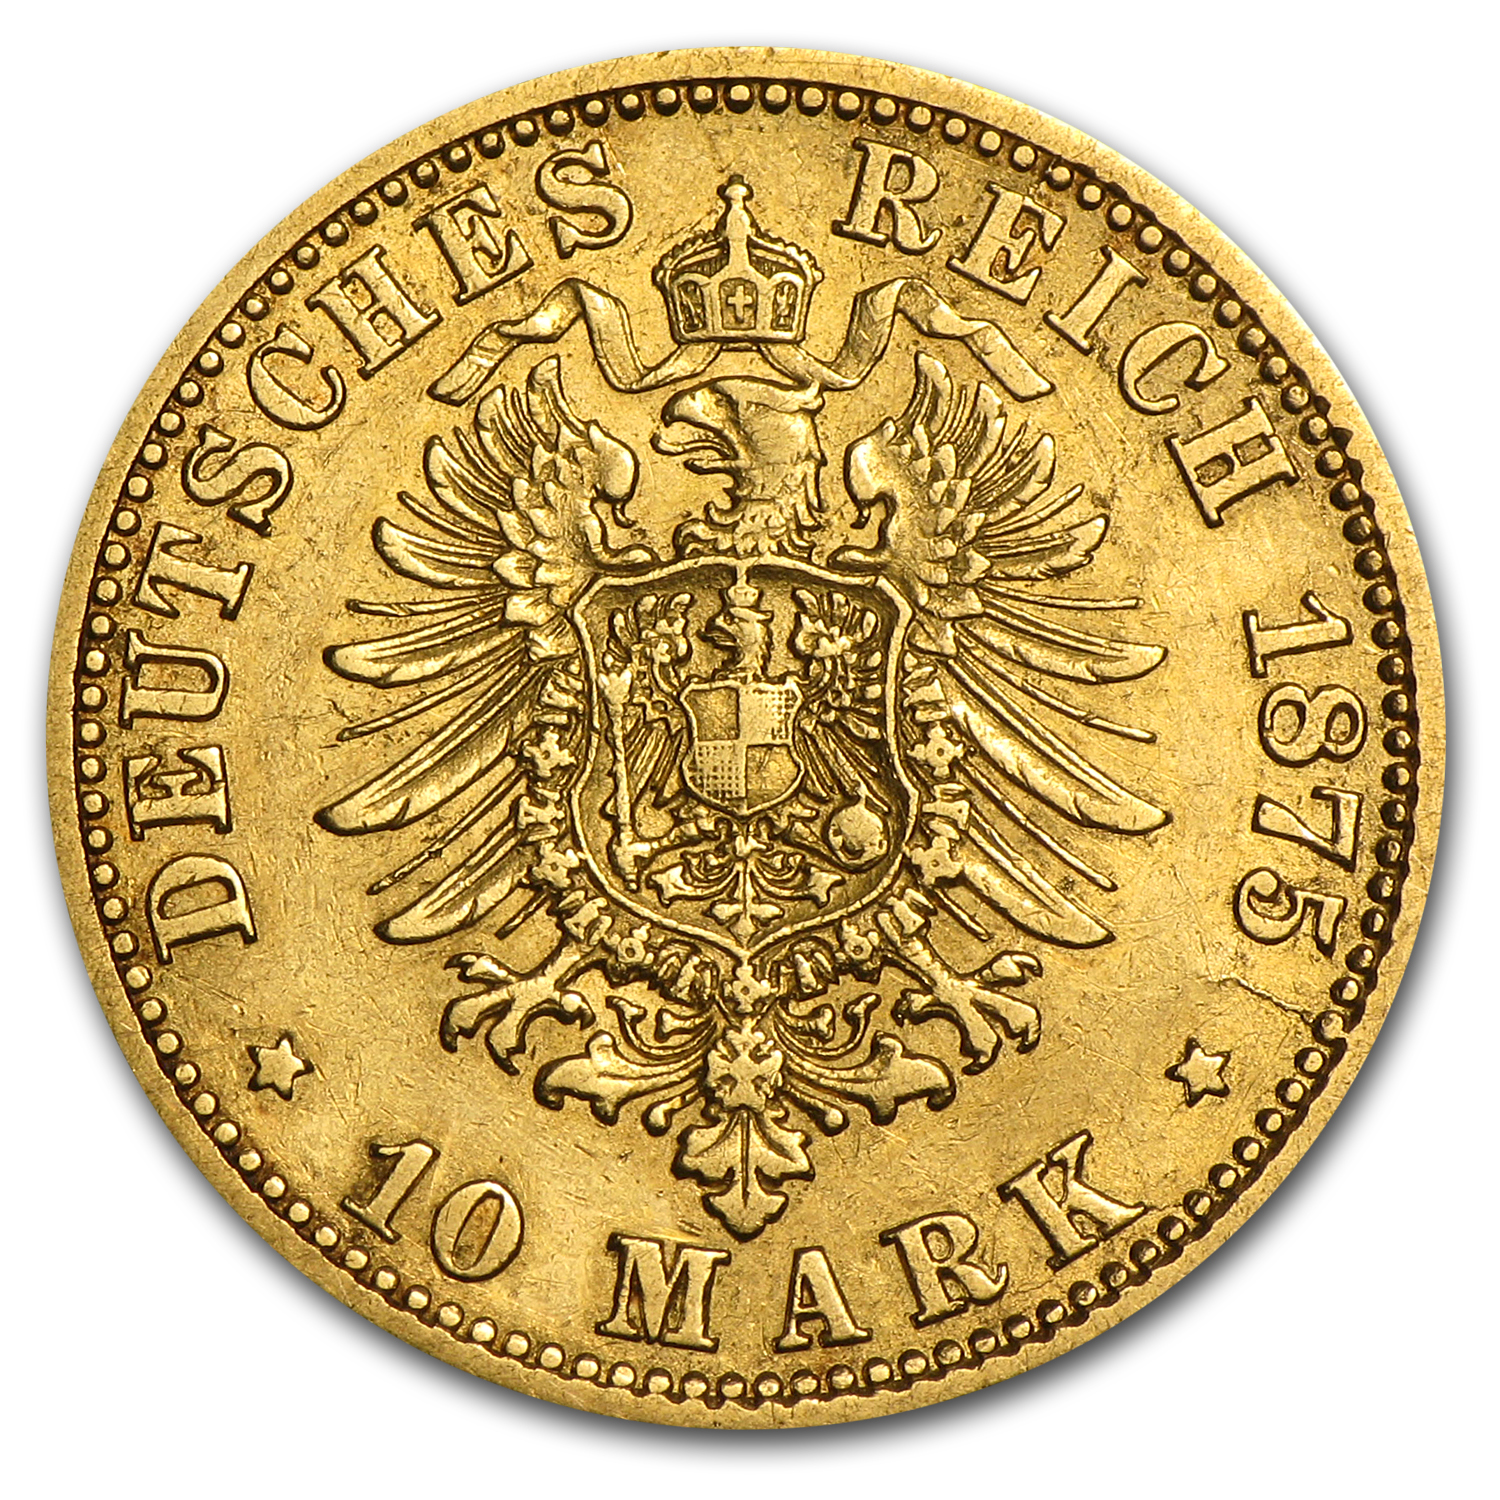 Germany Gold 10 Marks (Hamburg) (Average Circulated)